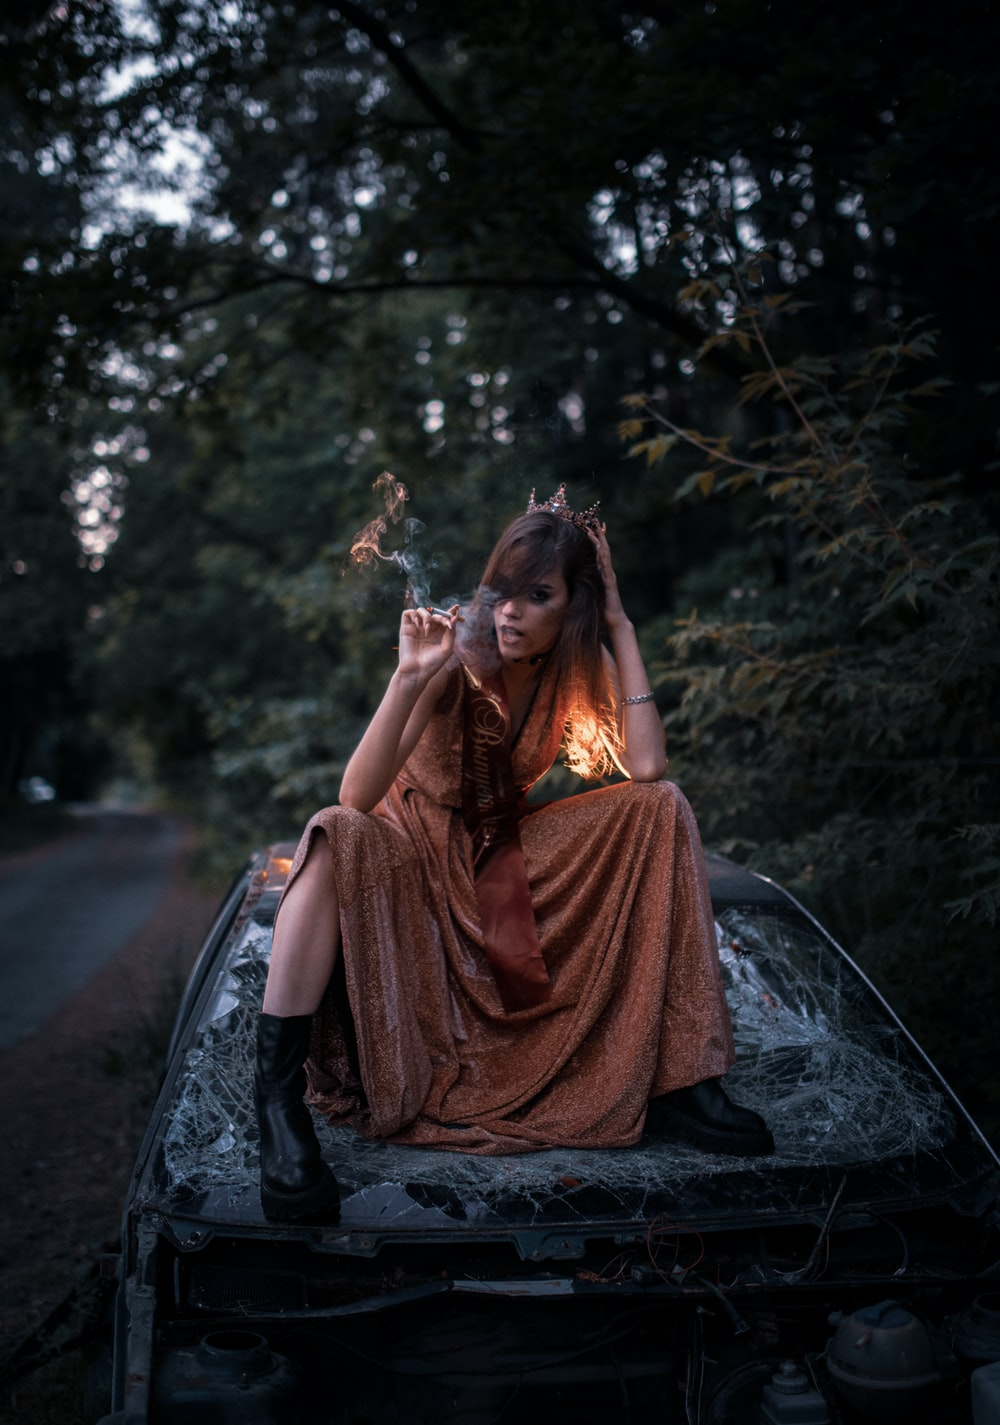 woman in red dress sitting on black car hood during daytime